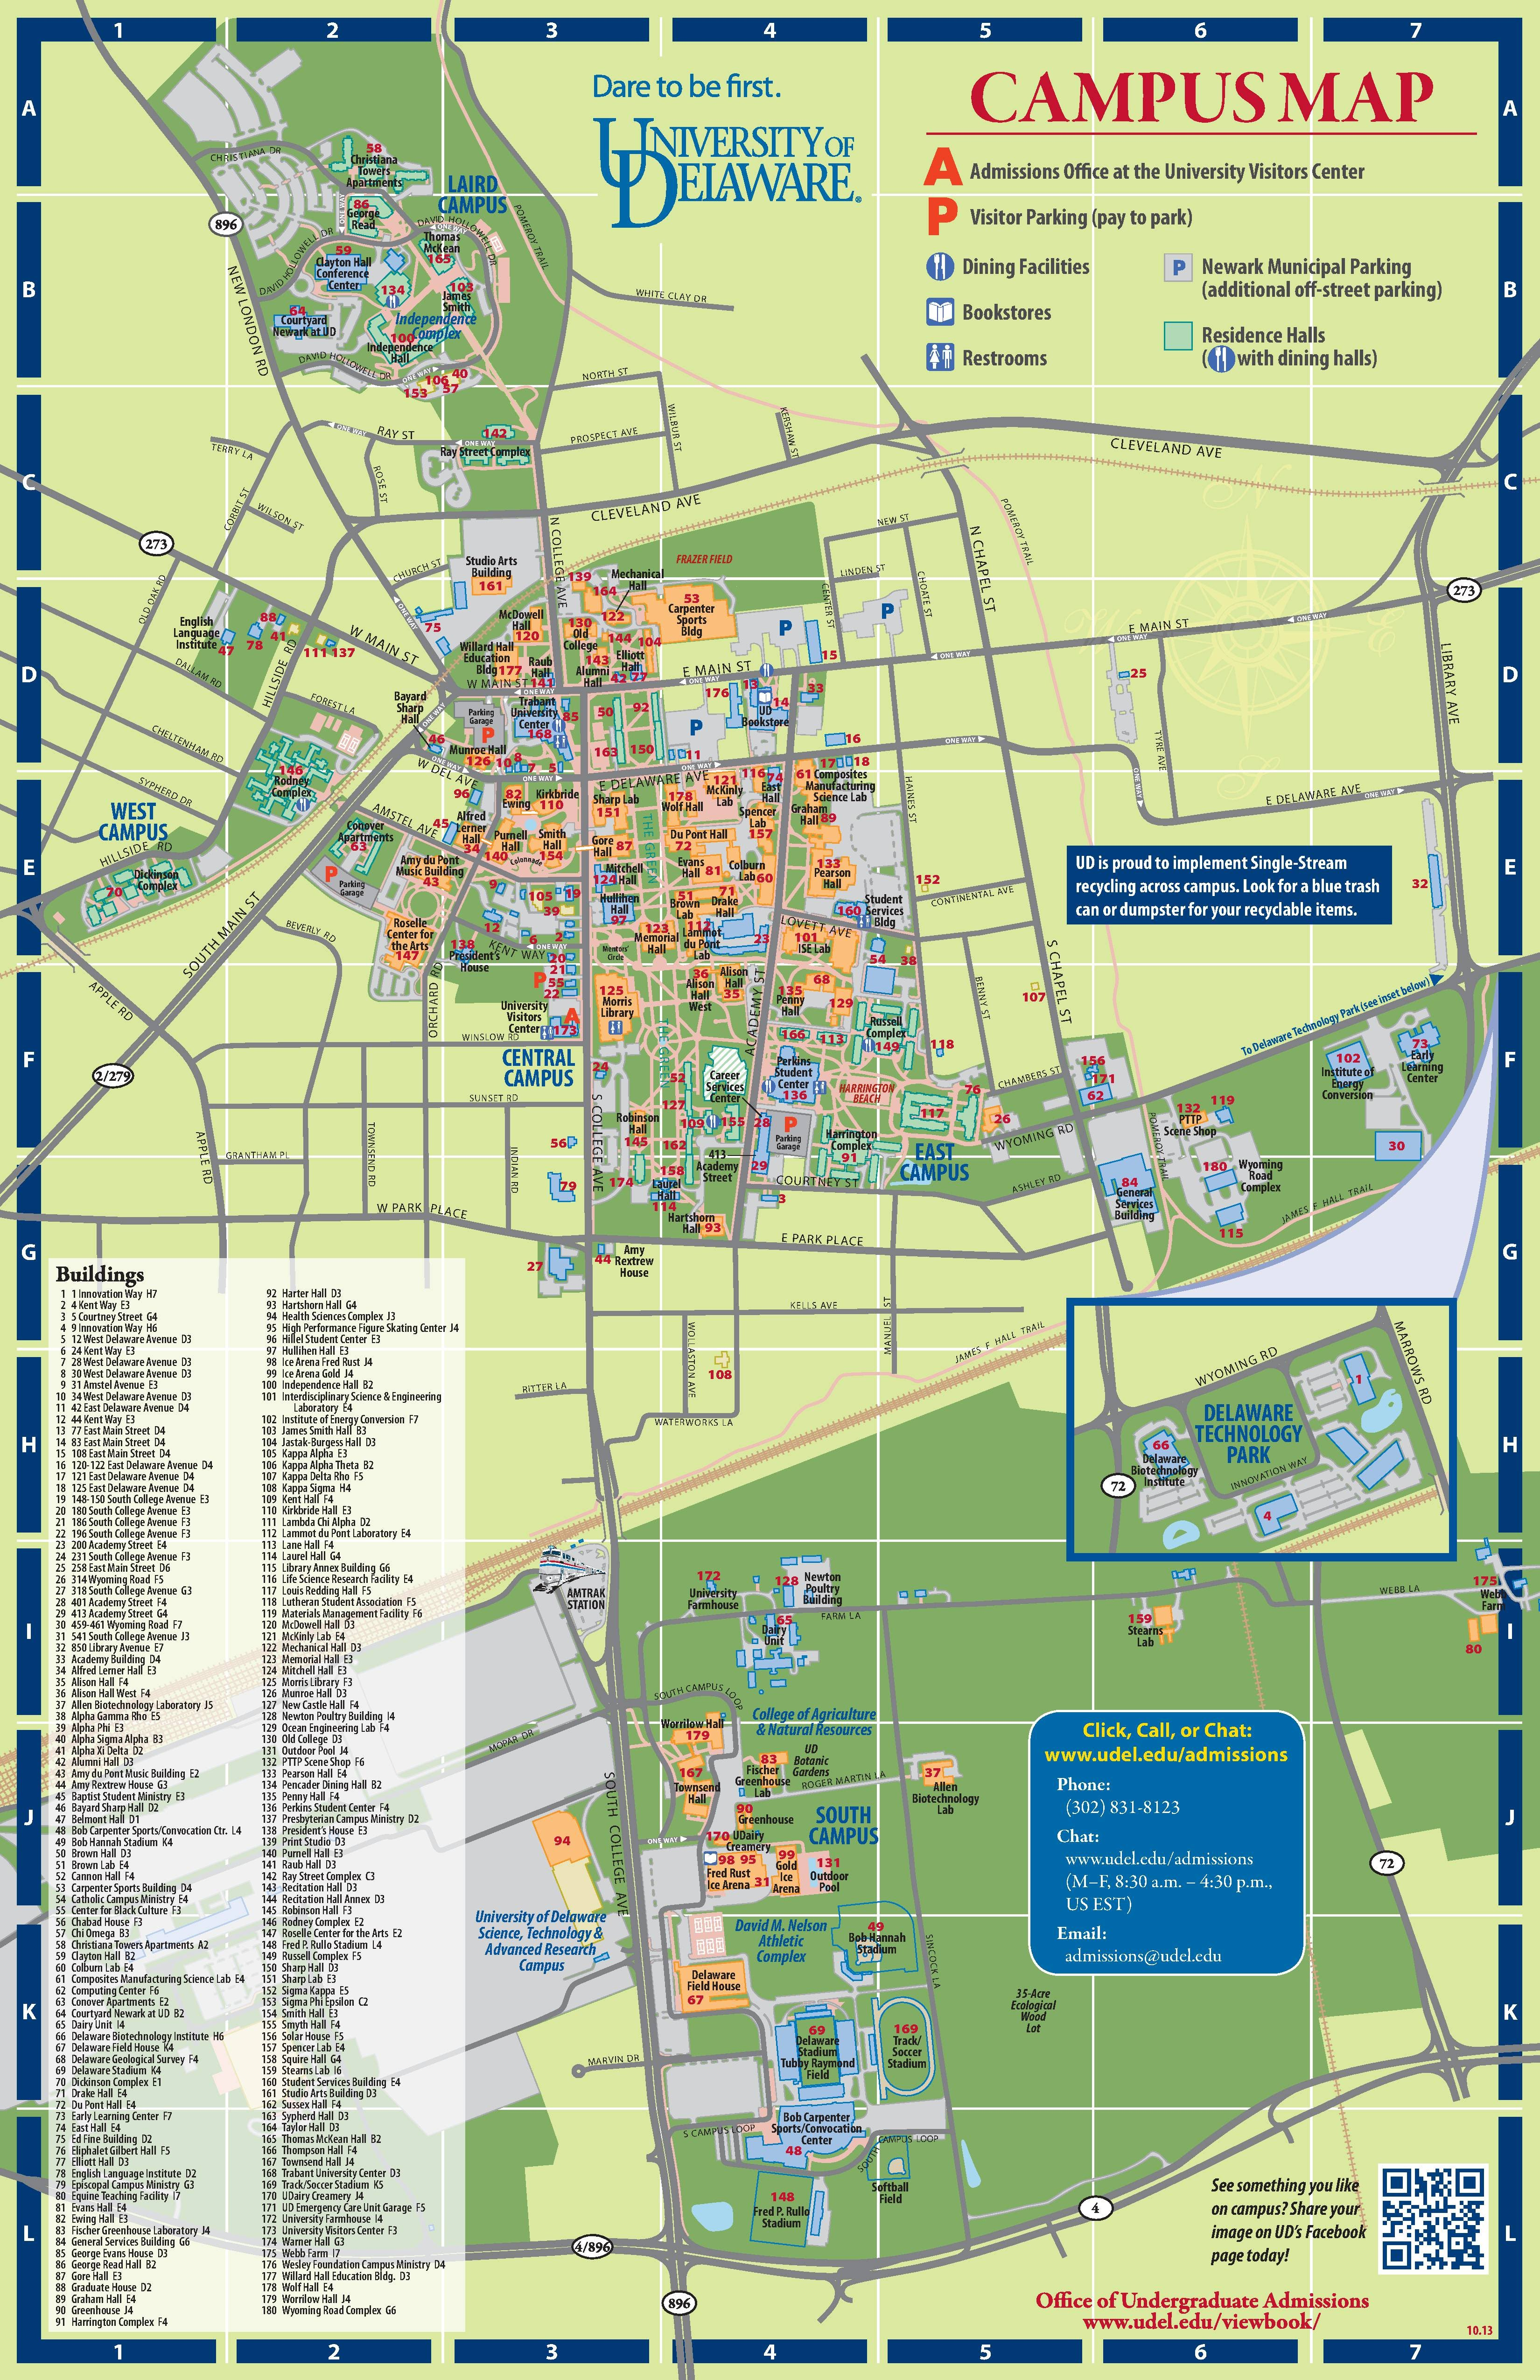 Travel & Lodging - Society of Physics Students @ UD! on university of delaware map, uh map, eagle map, shawnee state university campus map, bentley map, excalibur map, wright college map, ub map, tesla map, mc map, uhd map, university of findlay campus map, fairfield university campus map, umb map, uaa map, delaware state university map, udel campus map, uc map, delaware county iowa map, oshkosh map,